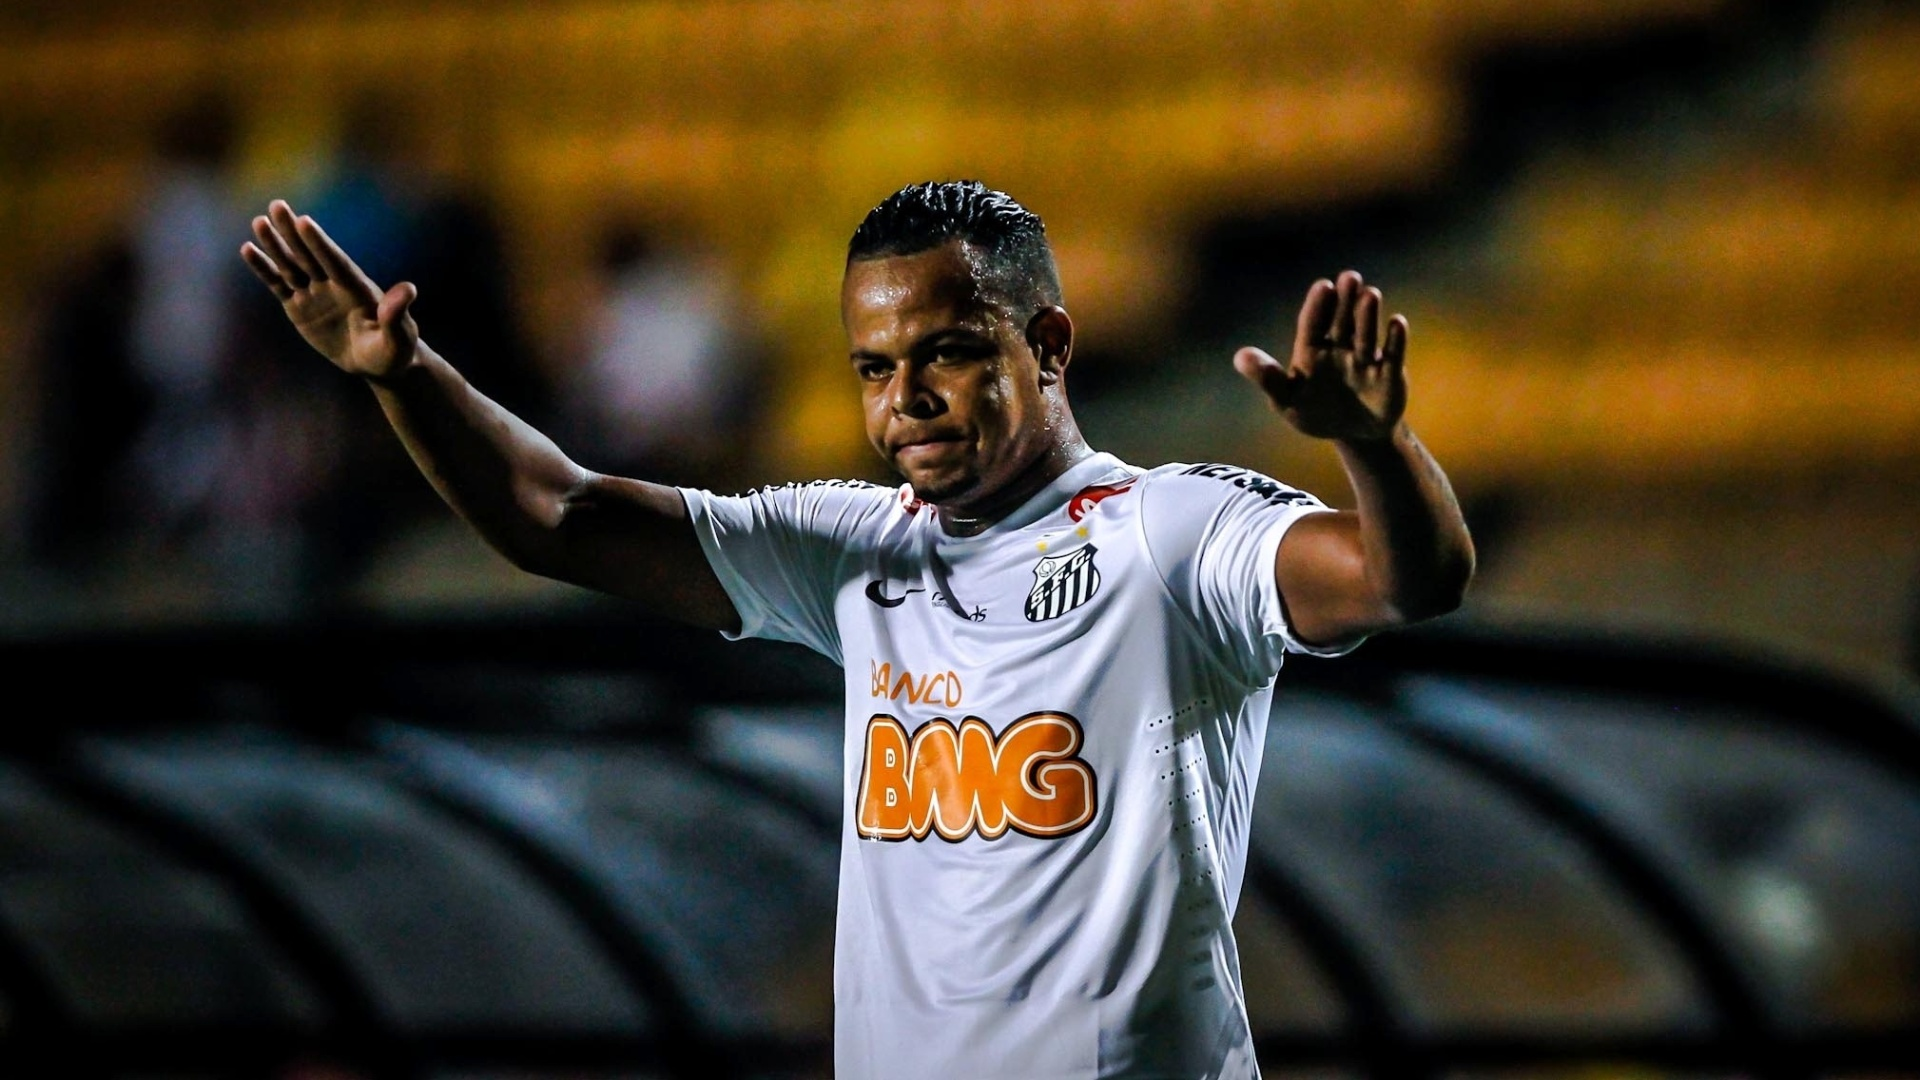 16.jan.2013 - Bill vibra. Ele marcou um dos gols do Santos contra o Grmio Barueri em amistoso